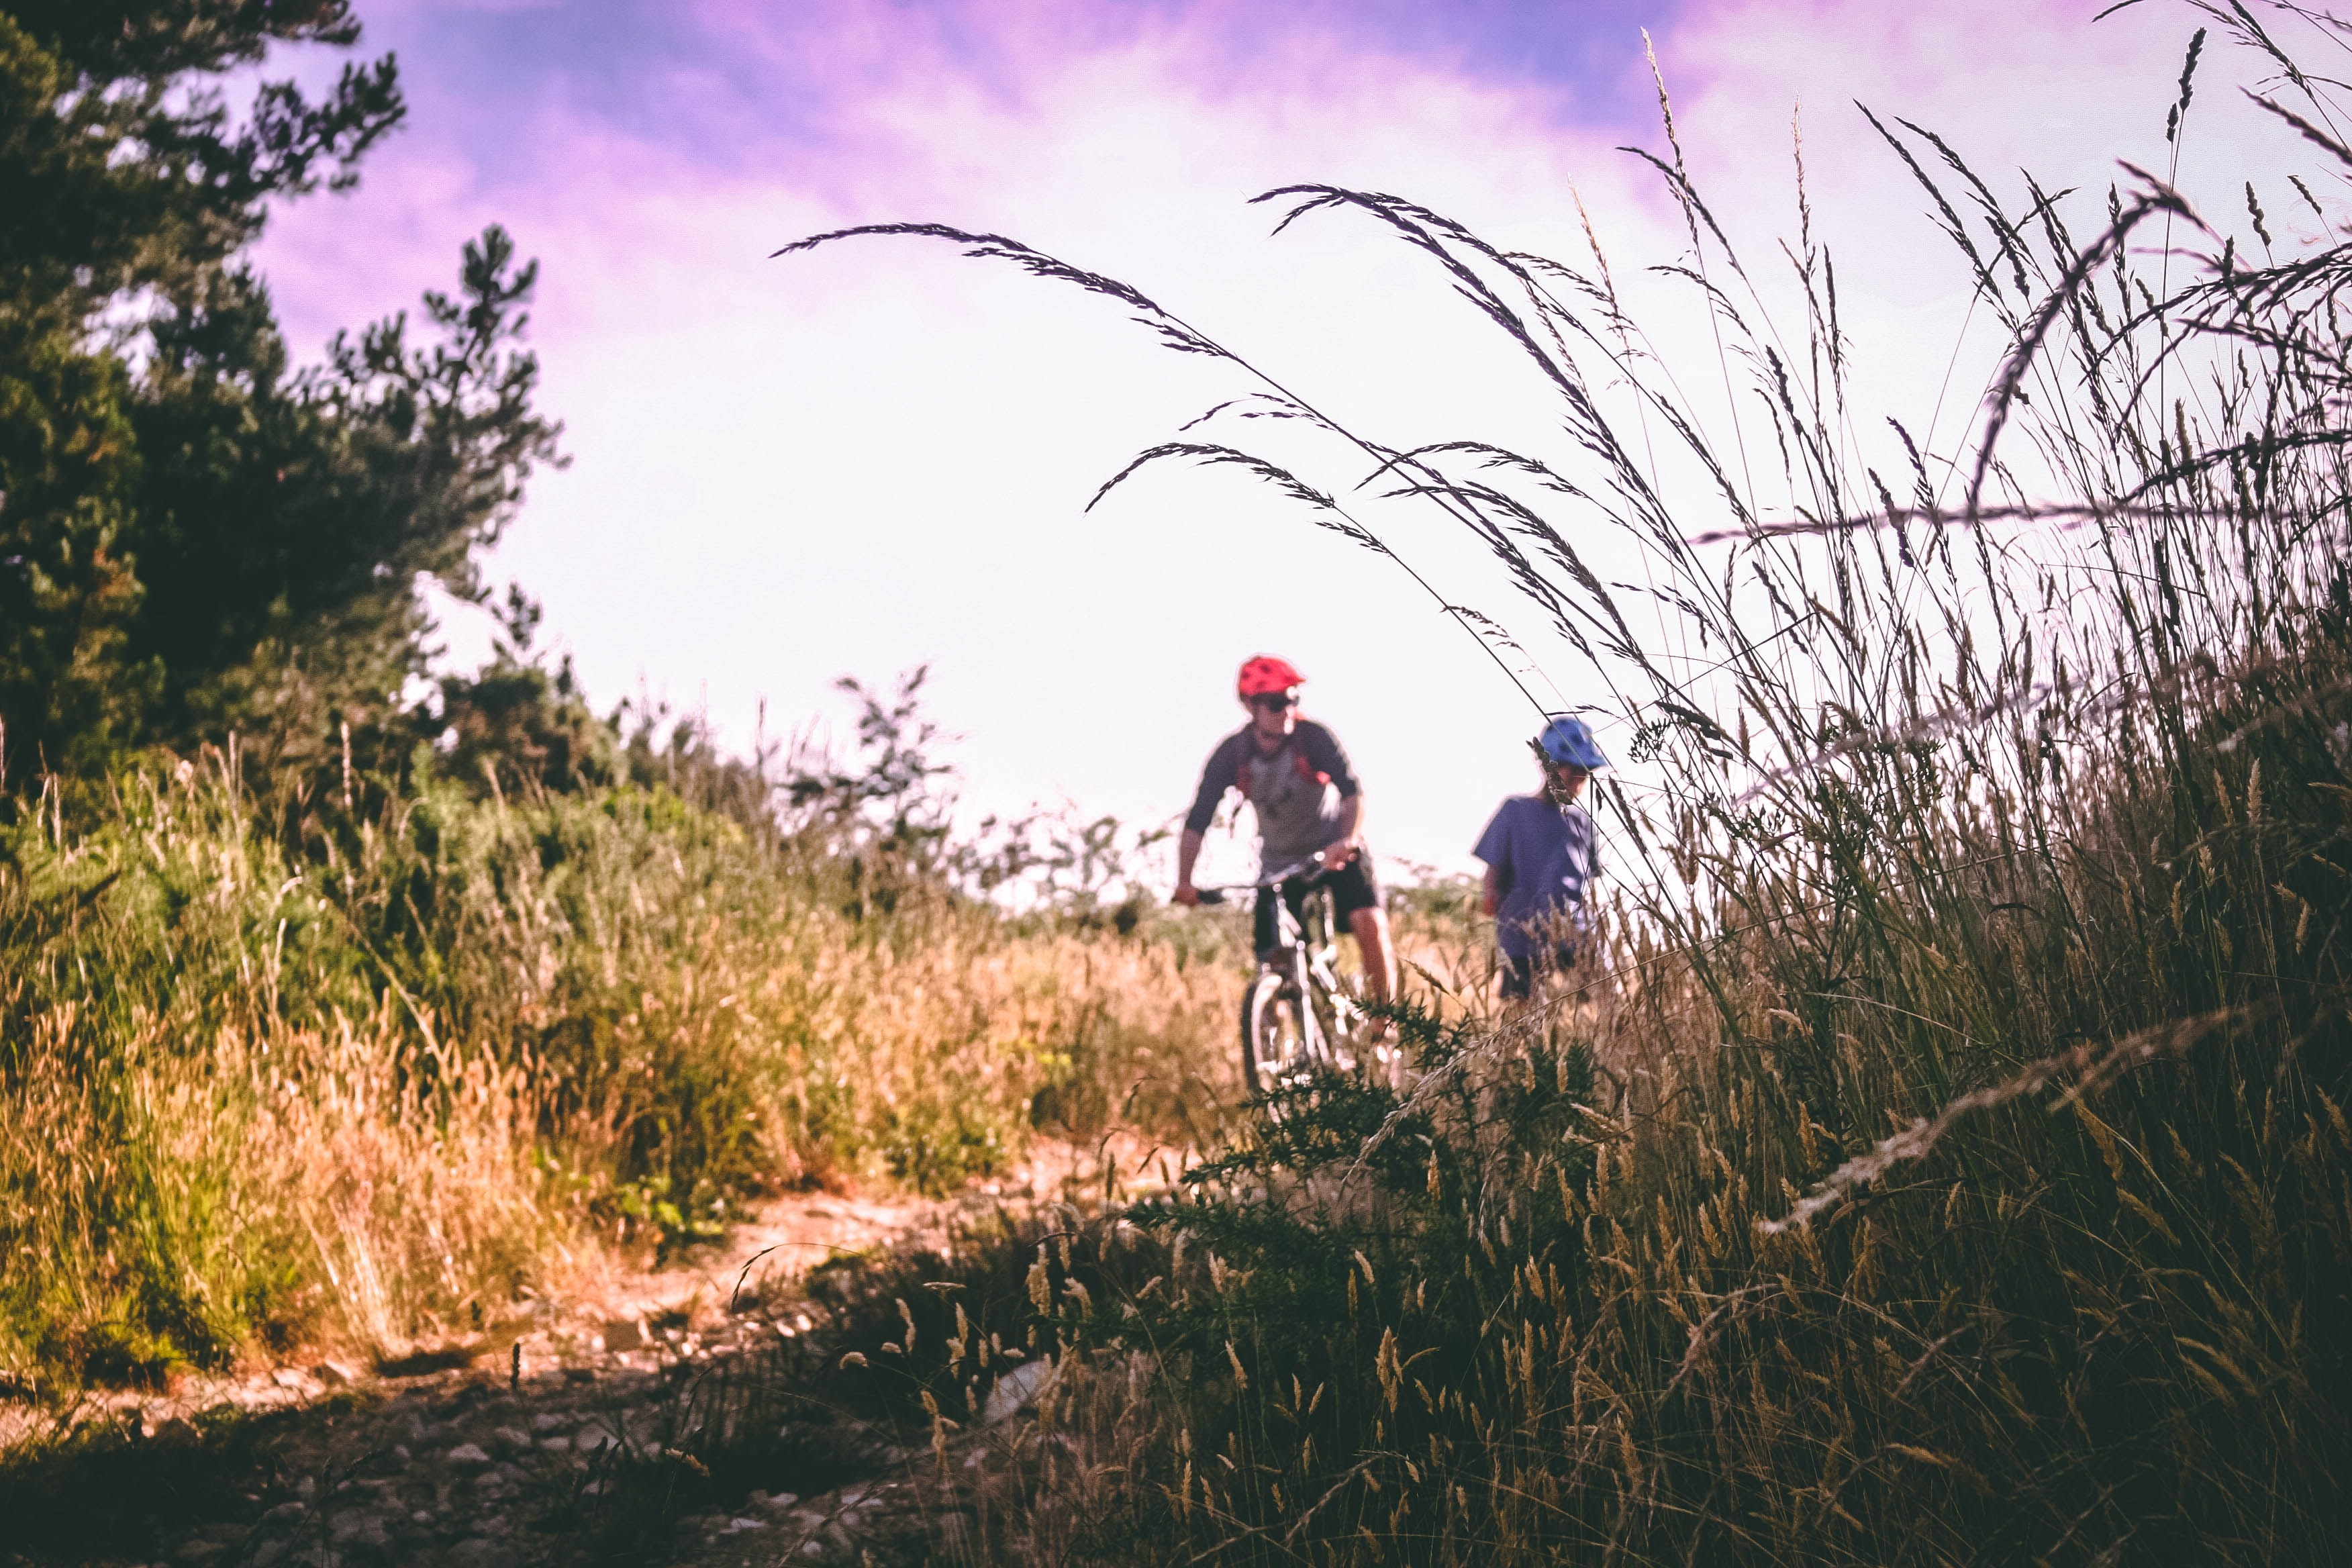 Two people riding bicycle photo